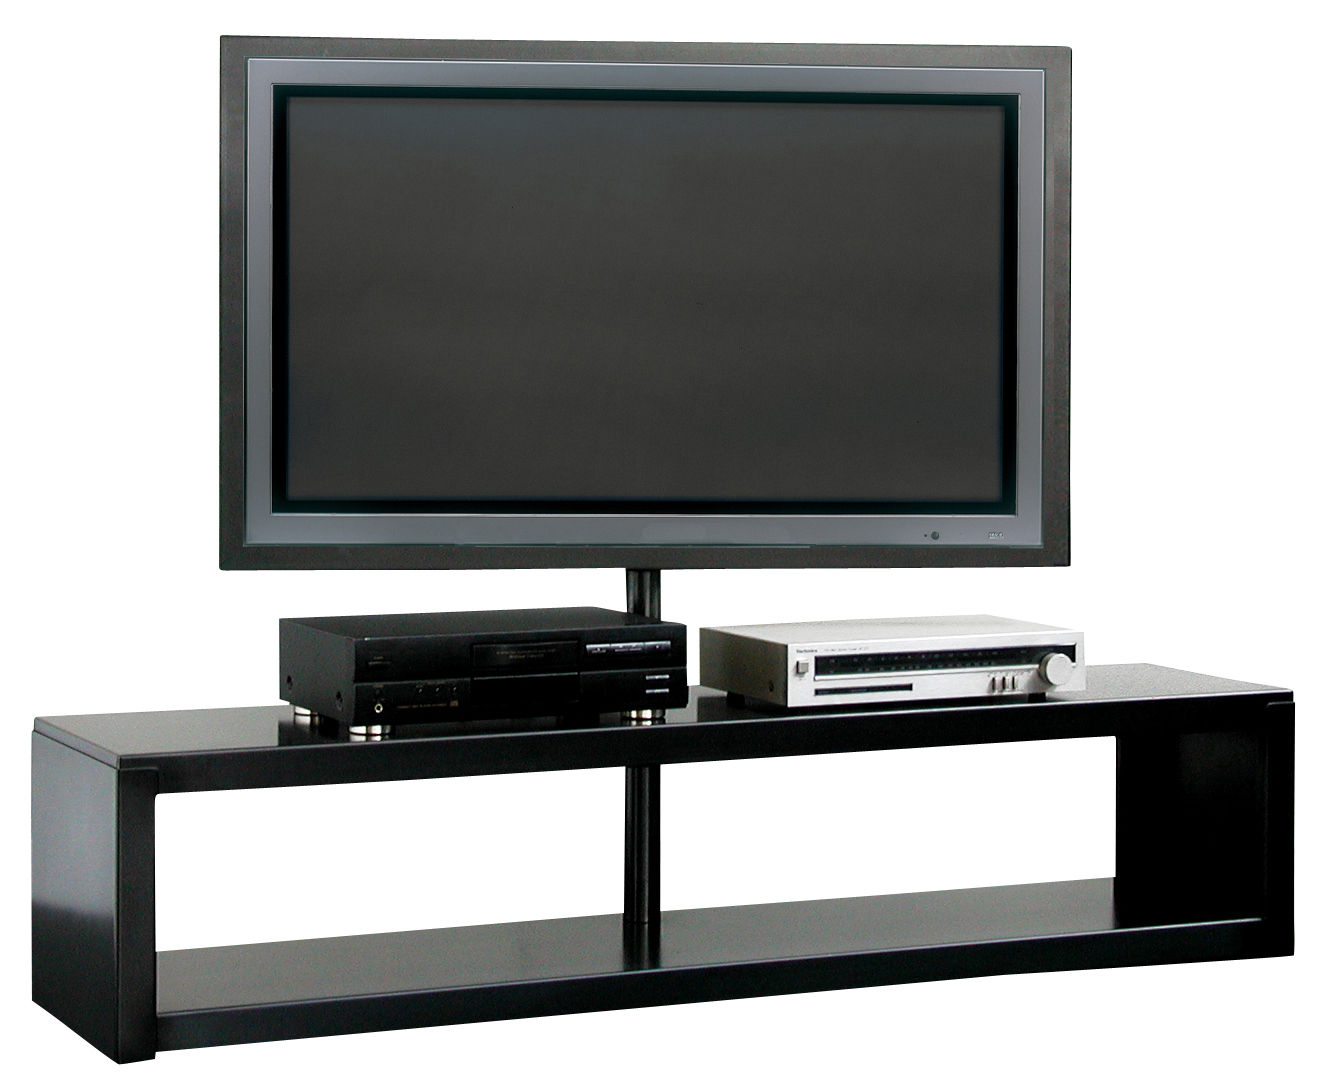 Plasma Tv Clipart Free Download Best Plasma Tv Clipart On  # Table Televiseur